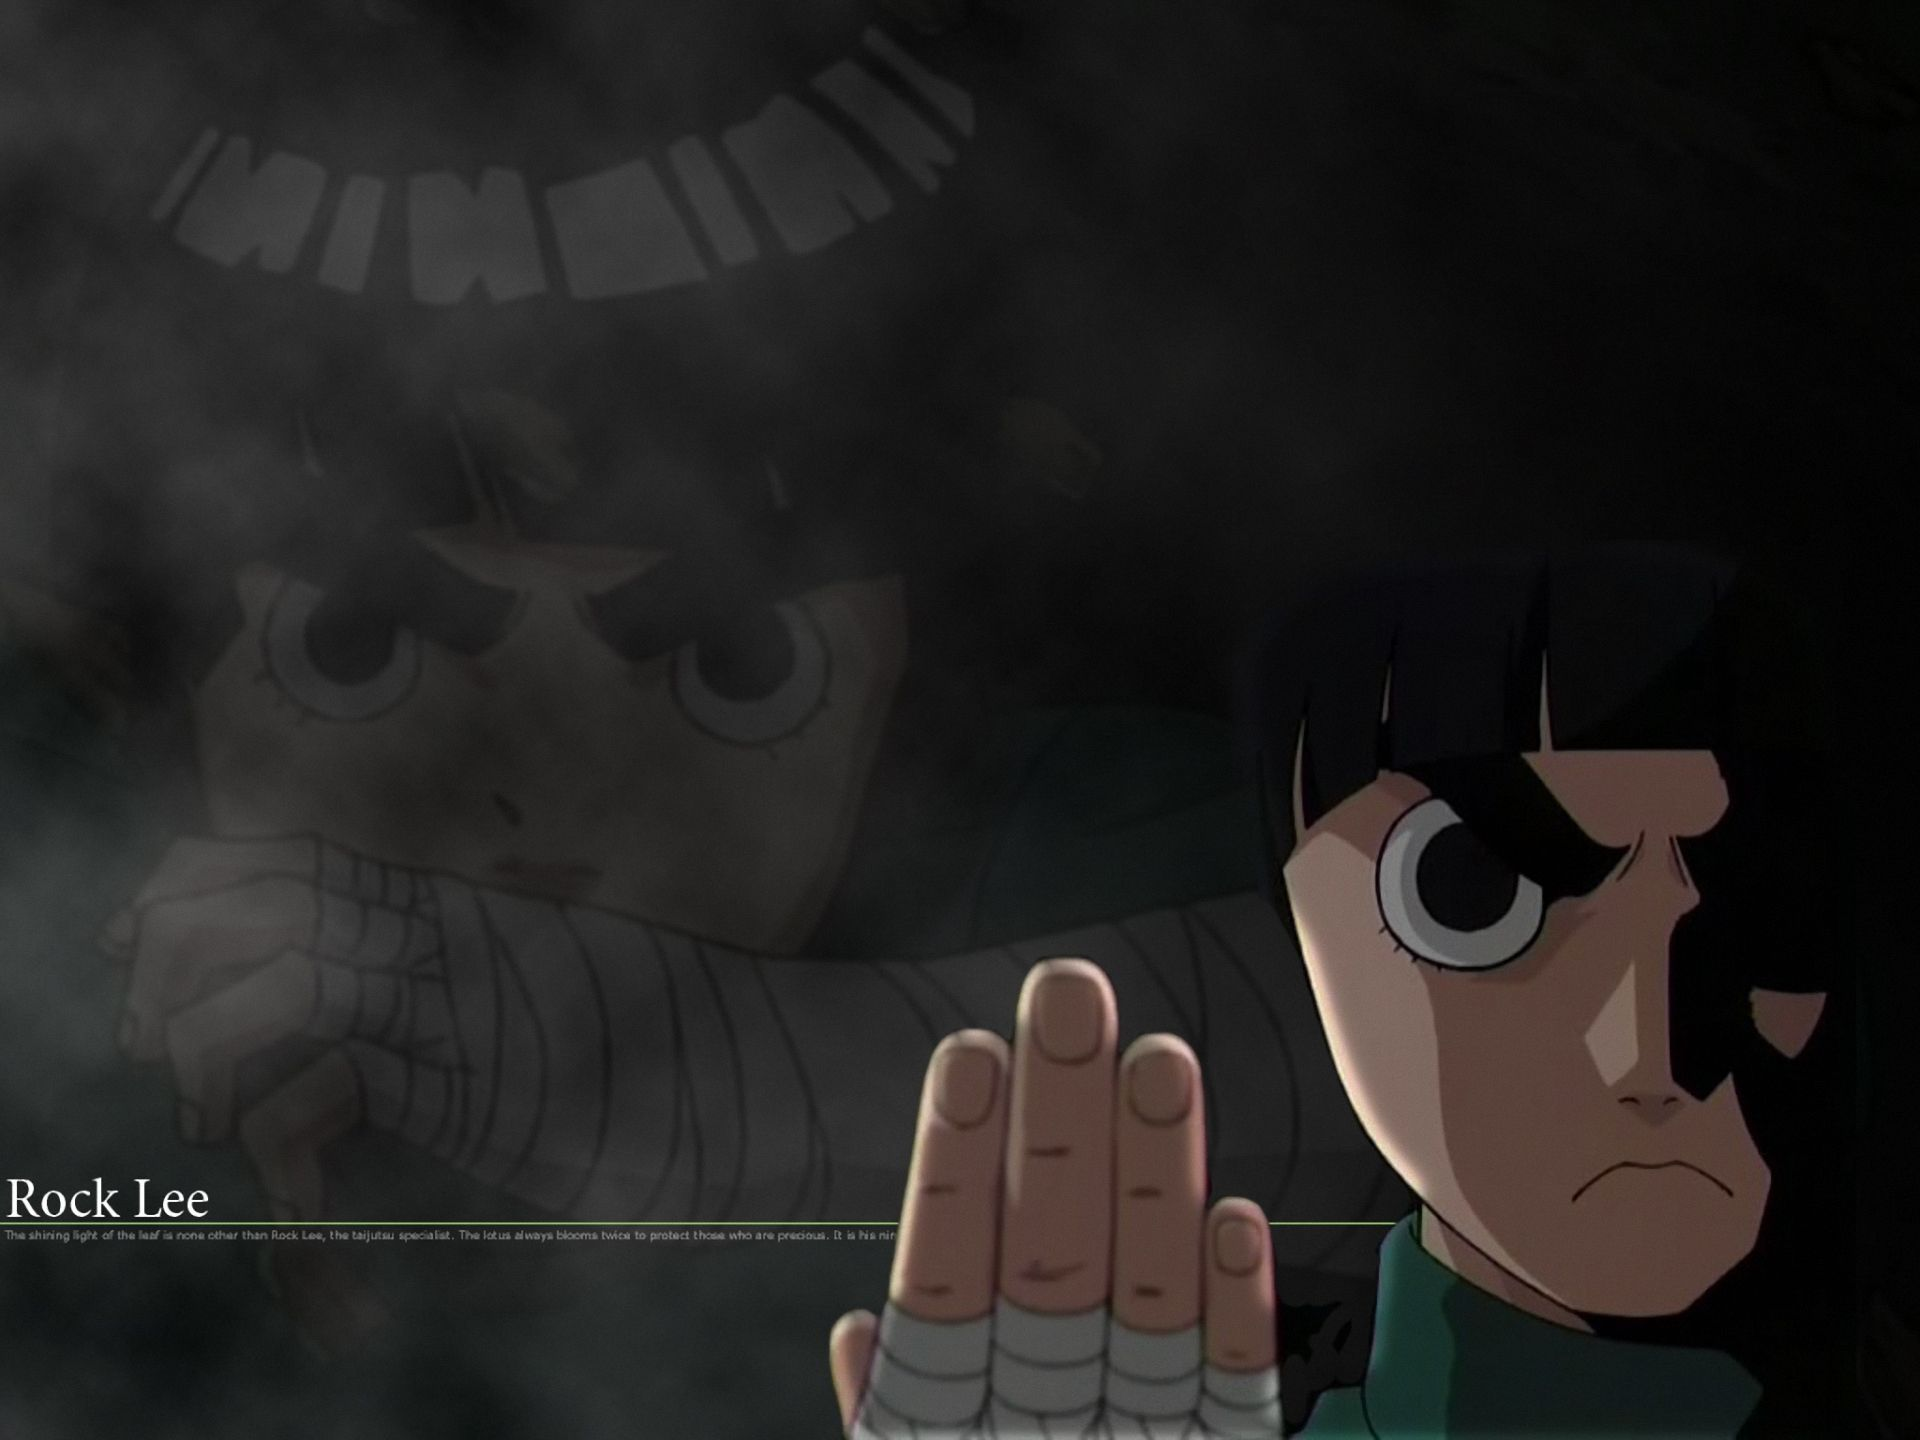 Anime Naruto Rock Lee Wallpaper